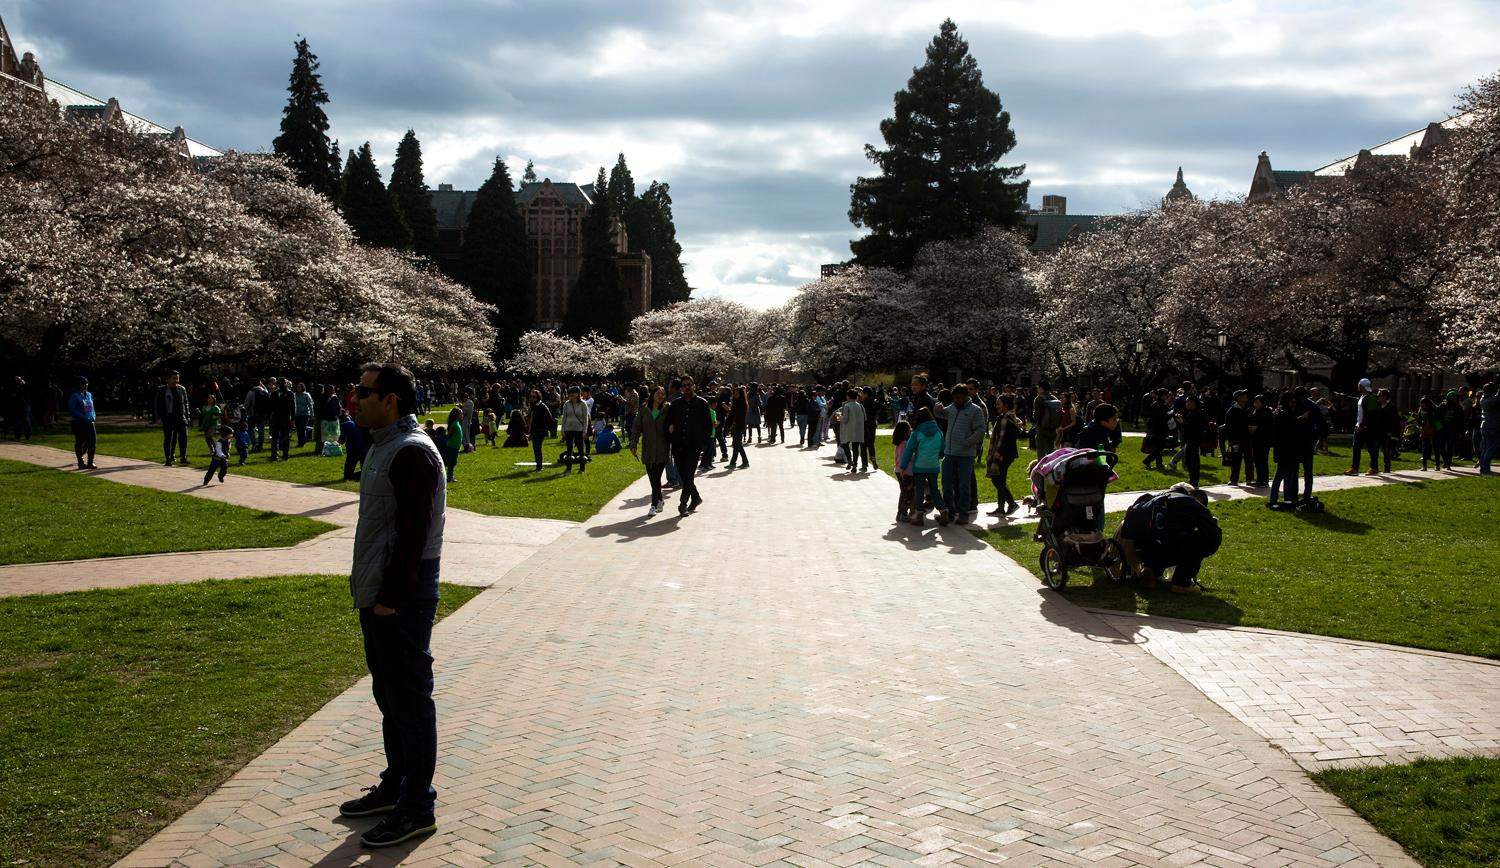 Hundreds of visitors walk the Quad to experience the 30 Yoshino cherry trees in bloom at the University of Washington, Saturday, March 17, 2018. The trees were originally purchased by the university in 1939 and planted in the Washington Park Arboretum, and then later transplanted in the Quad in 1962. The trees will be hitting peak bloom this week - so make sure to check them out! (Sy Bean / Seattle Refined)